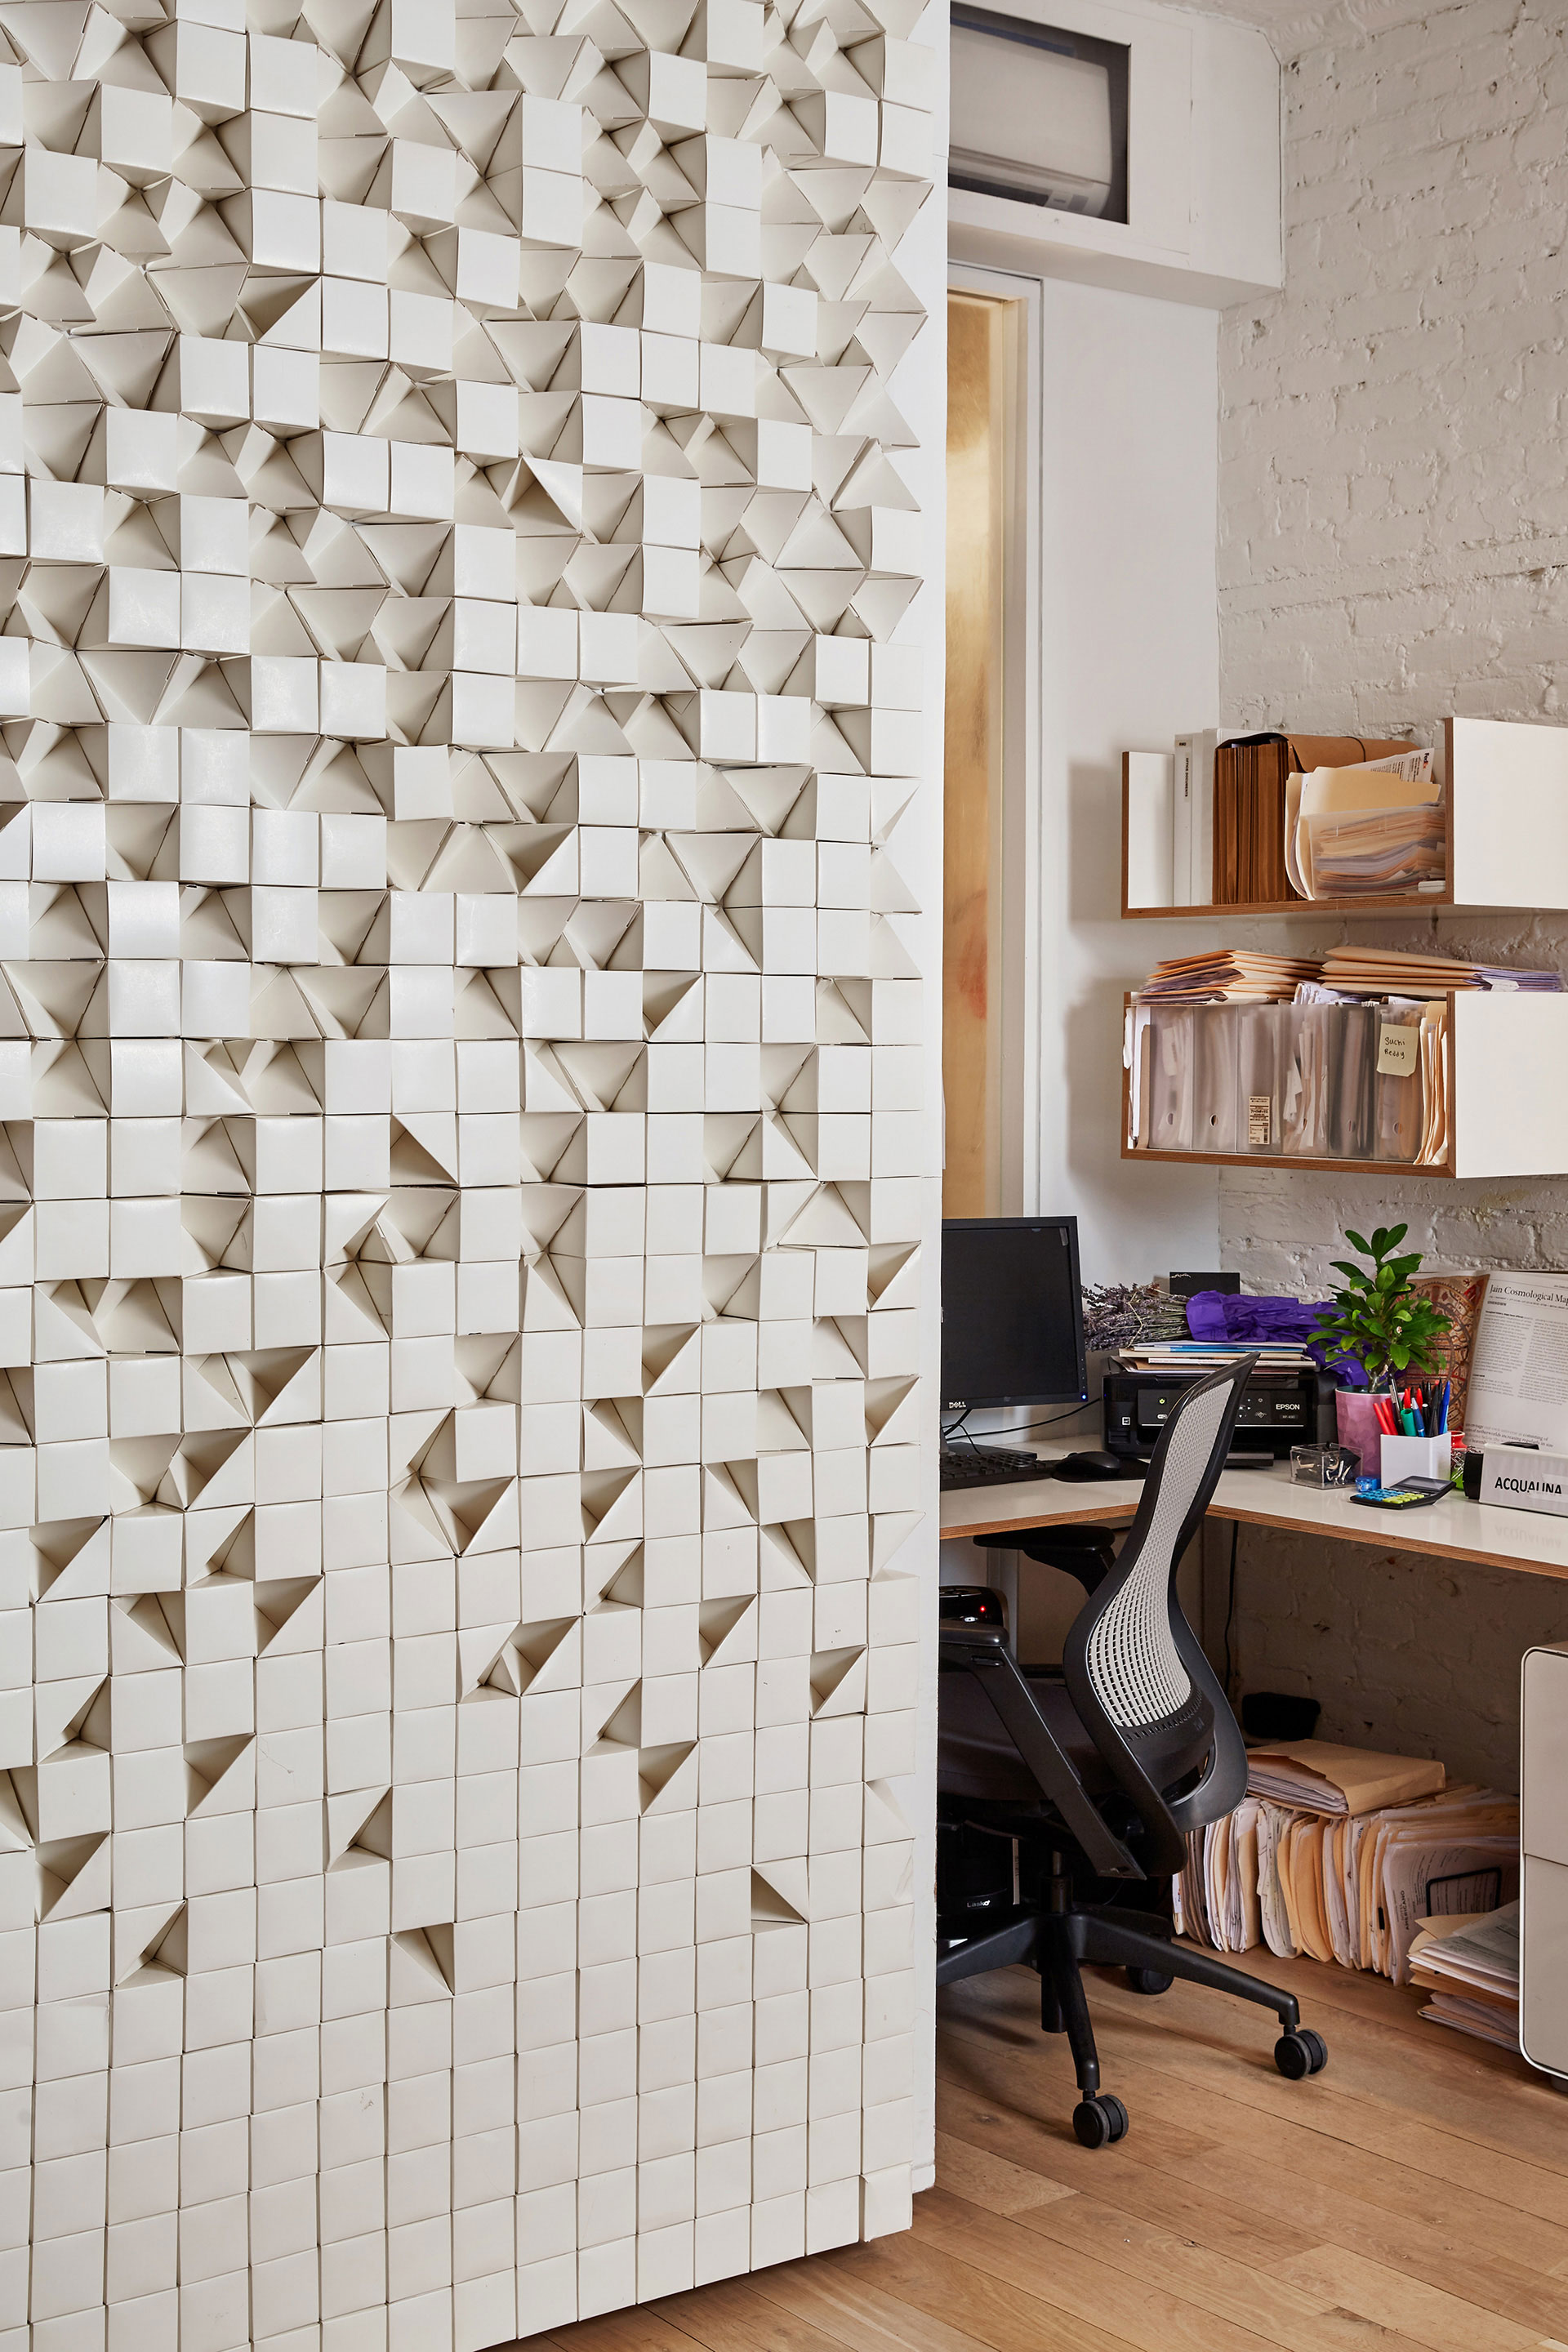 The office of Reddymade: Architecture and Design, New York| Suchi Reddy| STIR